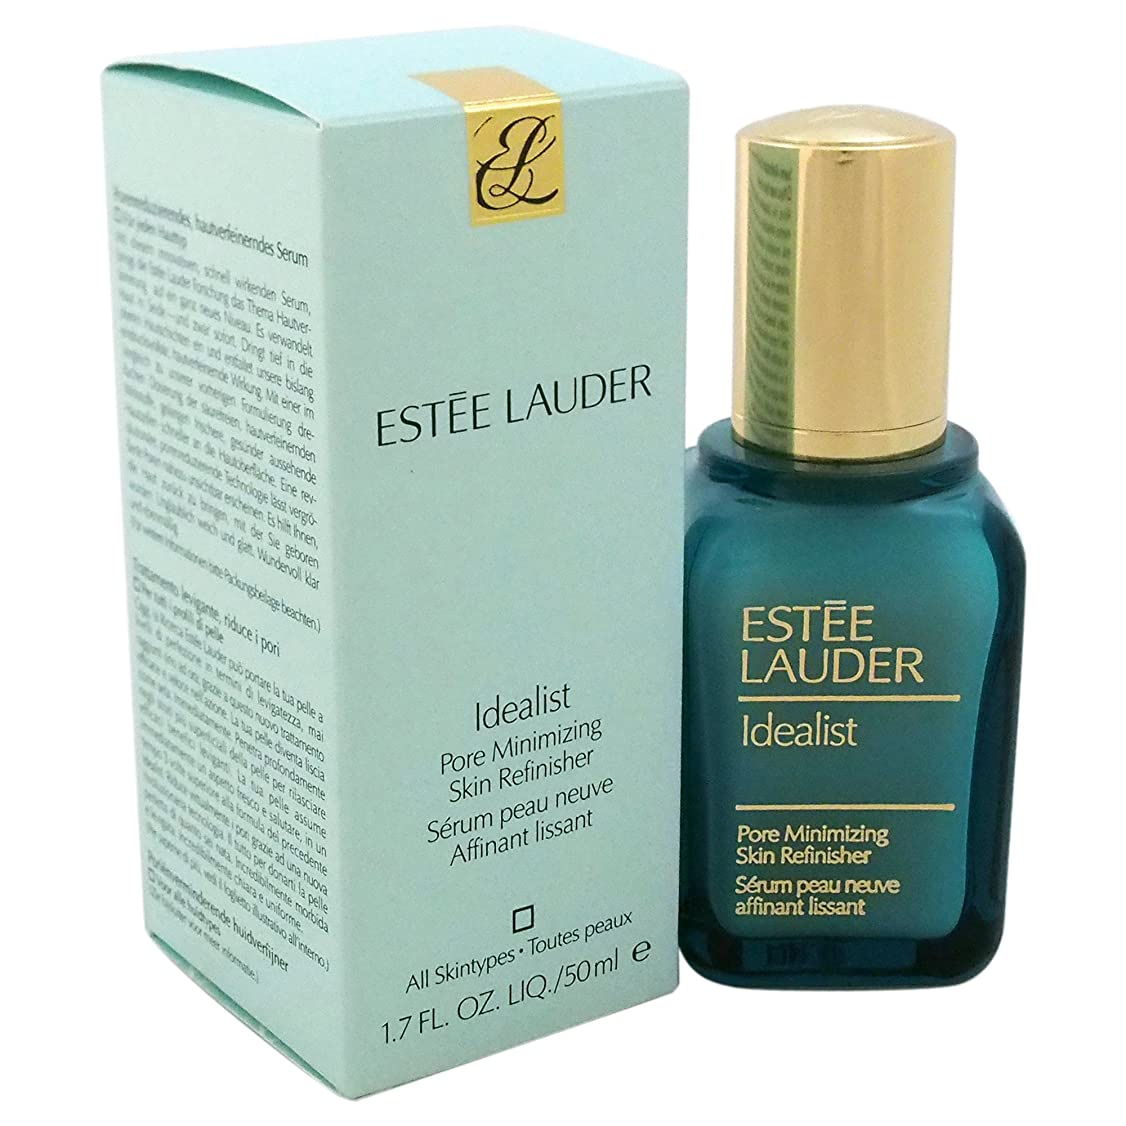 休暇いうワイプEstee Lauder Idealist Pore Minimizing Skin Refinisher 50ml [並行輸入品]